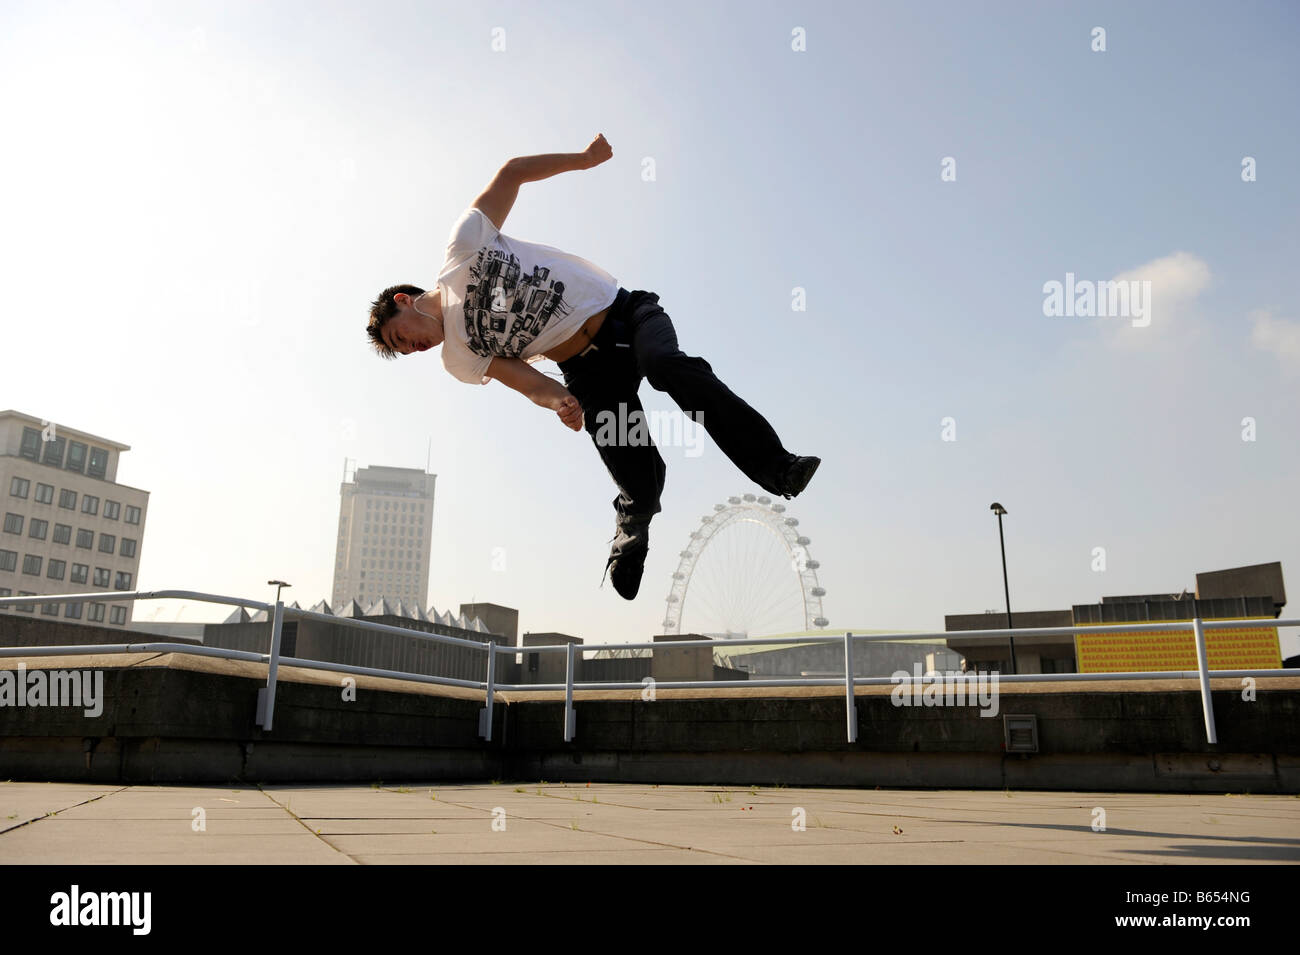 Danny Darwin demonstrating free running (parkour) techniques with the London Eue in the background - Stock Image